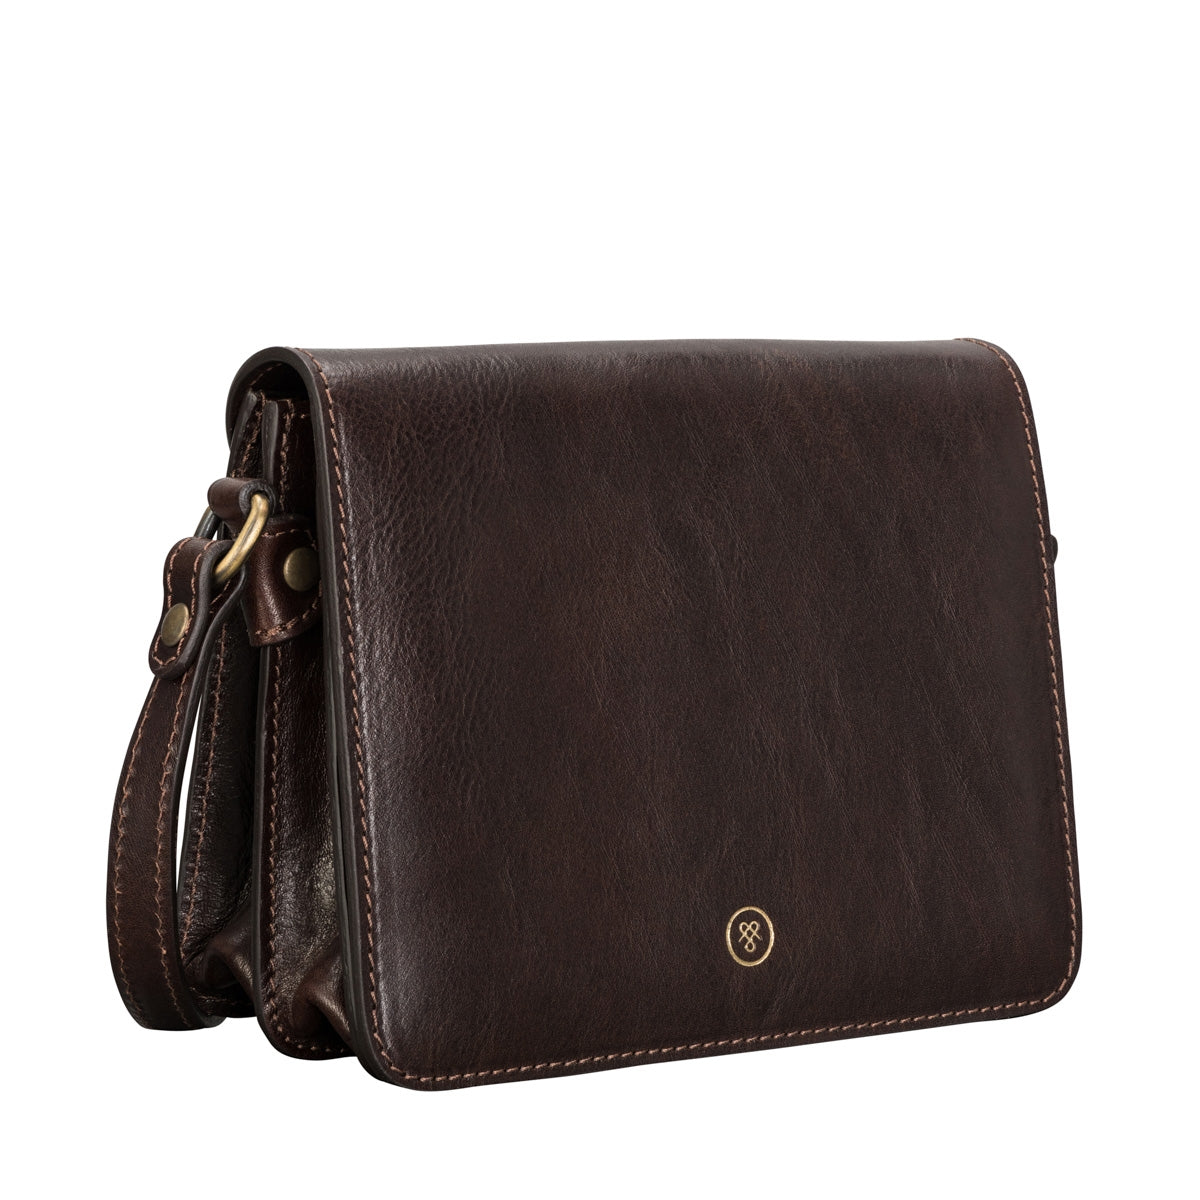 Image 2 of the 'Lucca' Small Dark Chocolate Veg-Tanned Leather Handbag